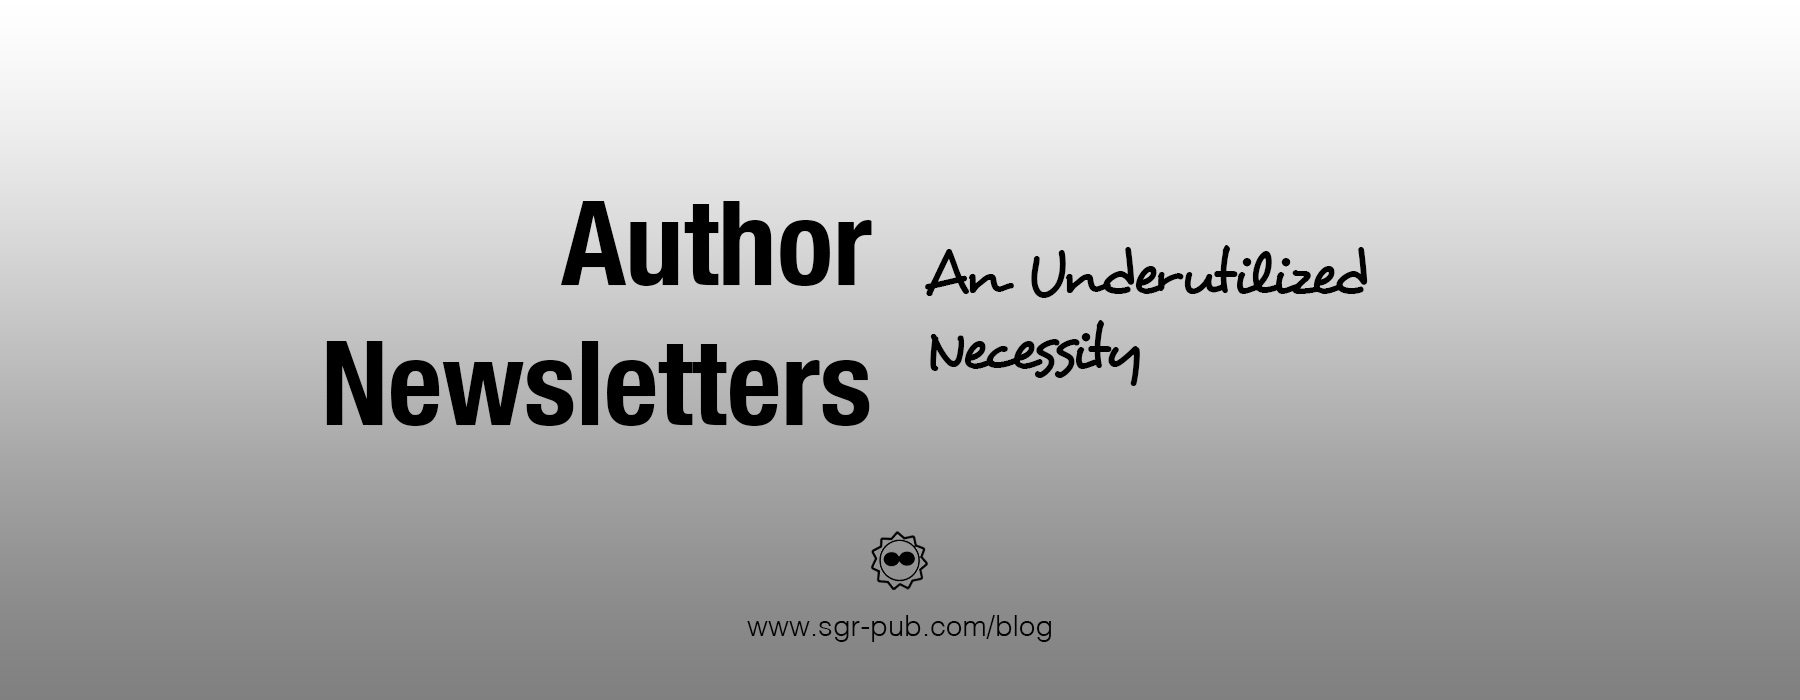 Your author newsletter is an underutilized necessity.